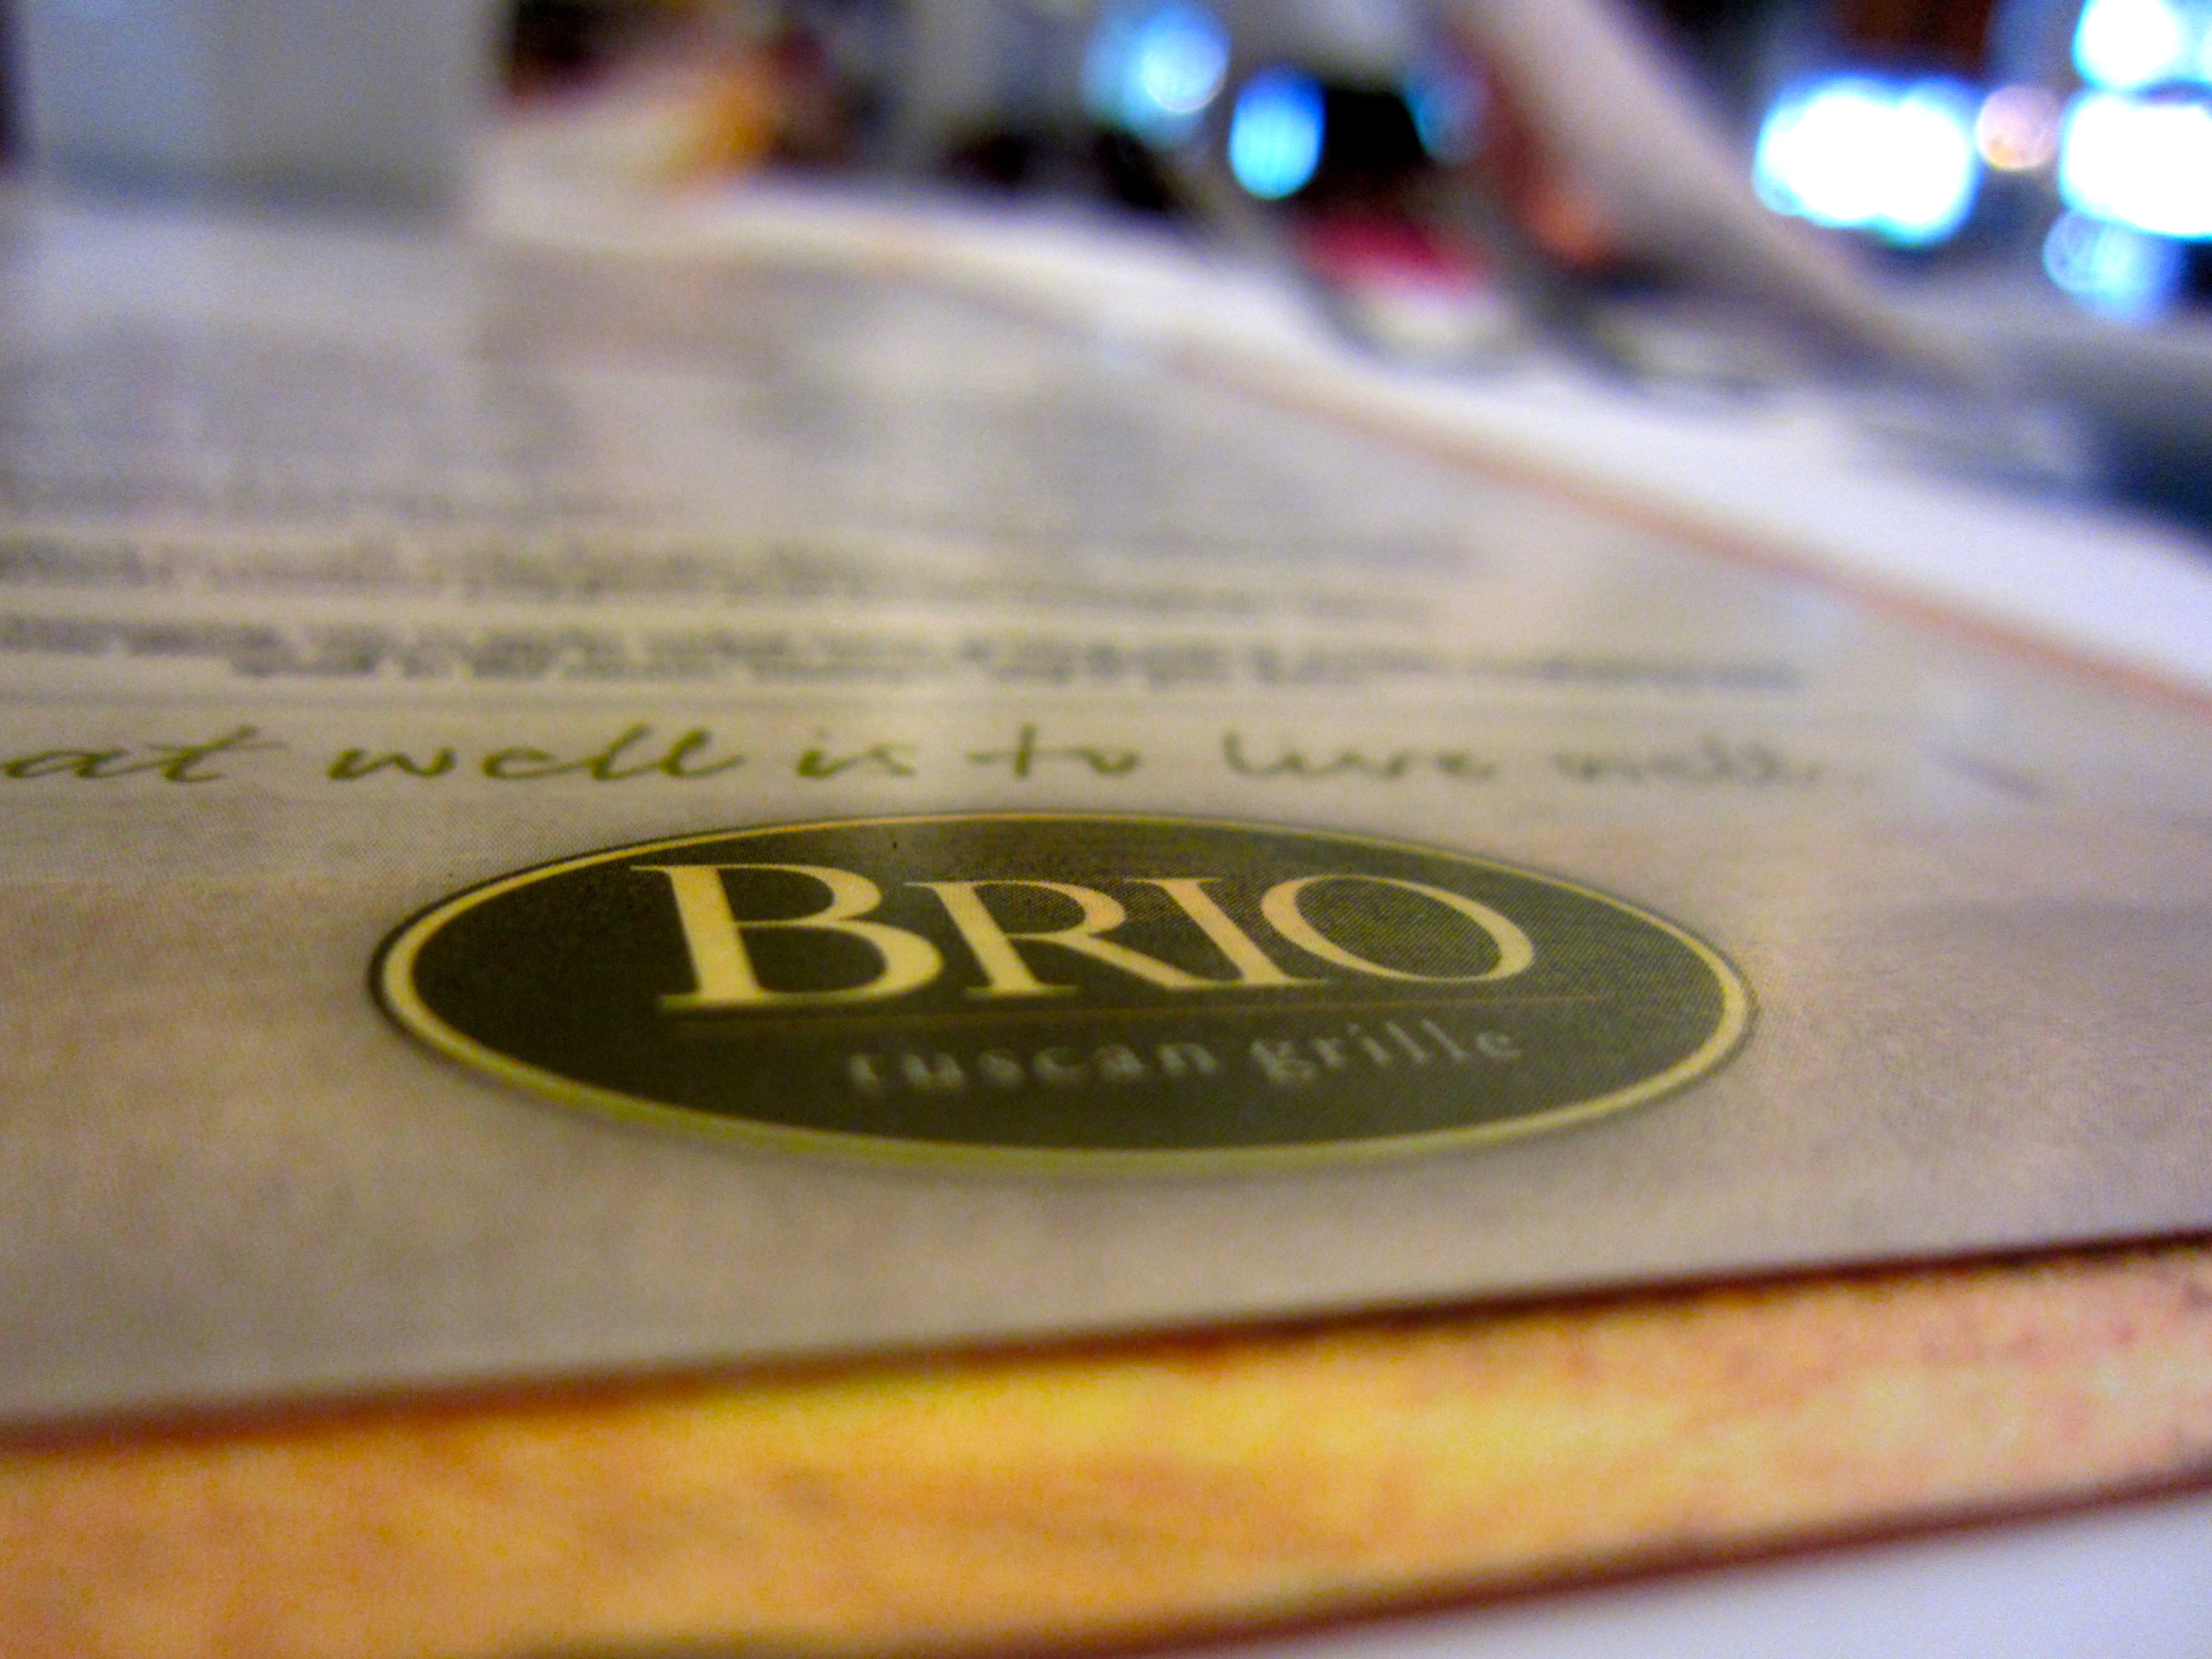 HAIKU REVIEW: BRIO TUSCAN GRILLE | Feed The Monster